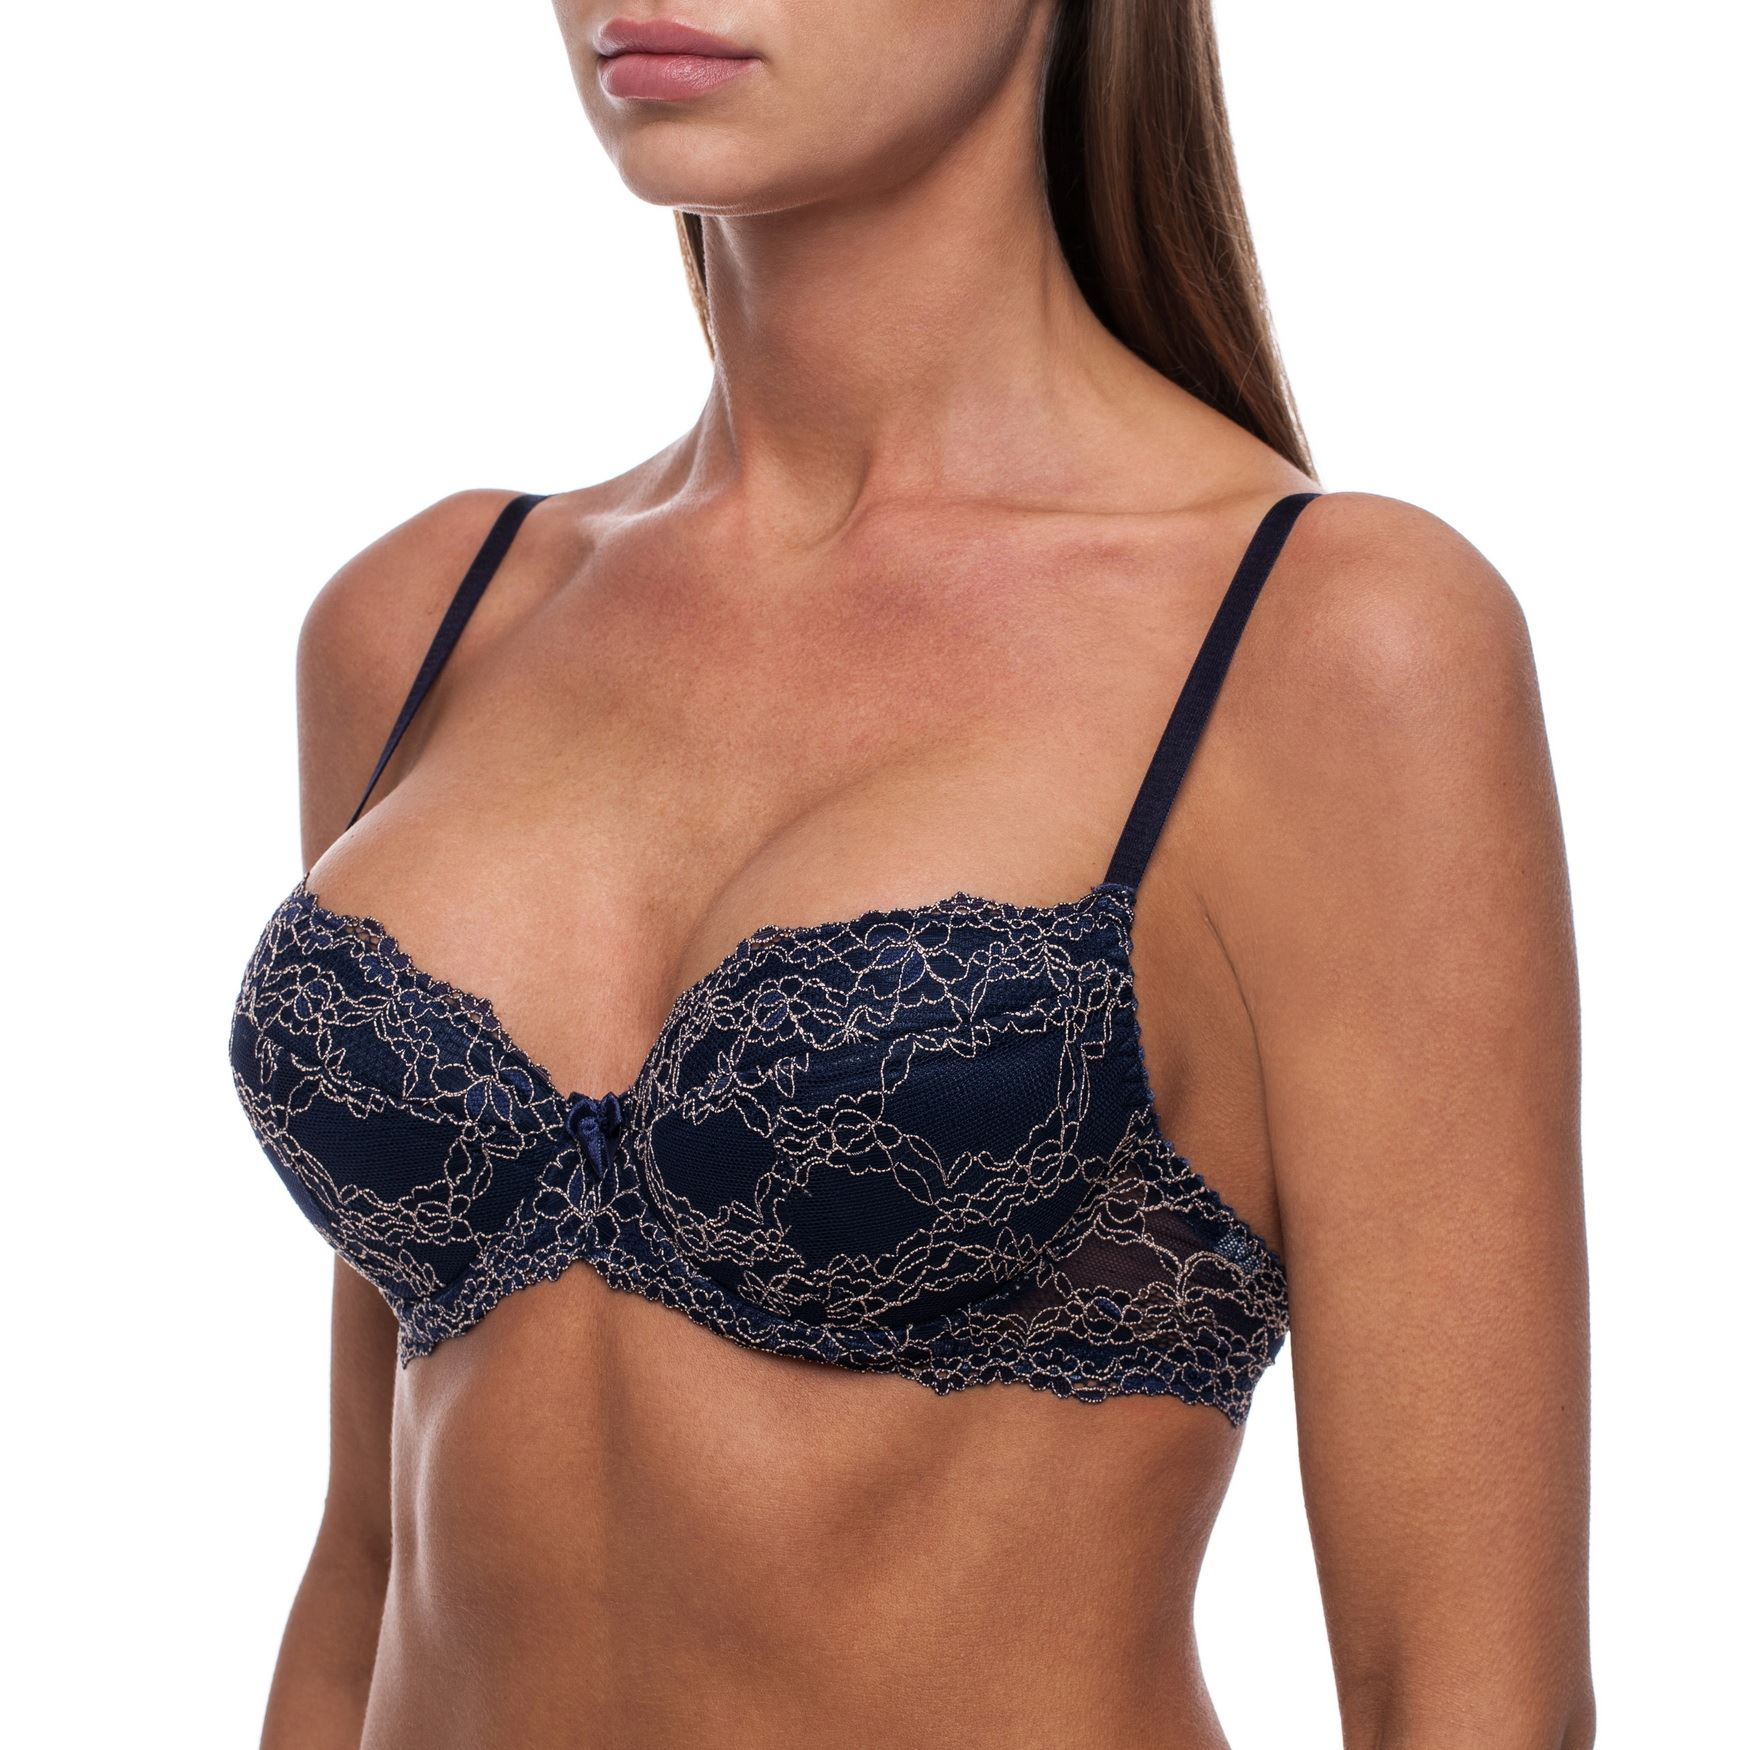 44c65daa5b6c2 Sexy Push Up Lace Comfortable Underwire Demi Half Cup Padded PushUp ...